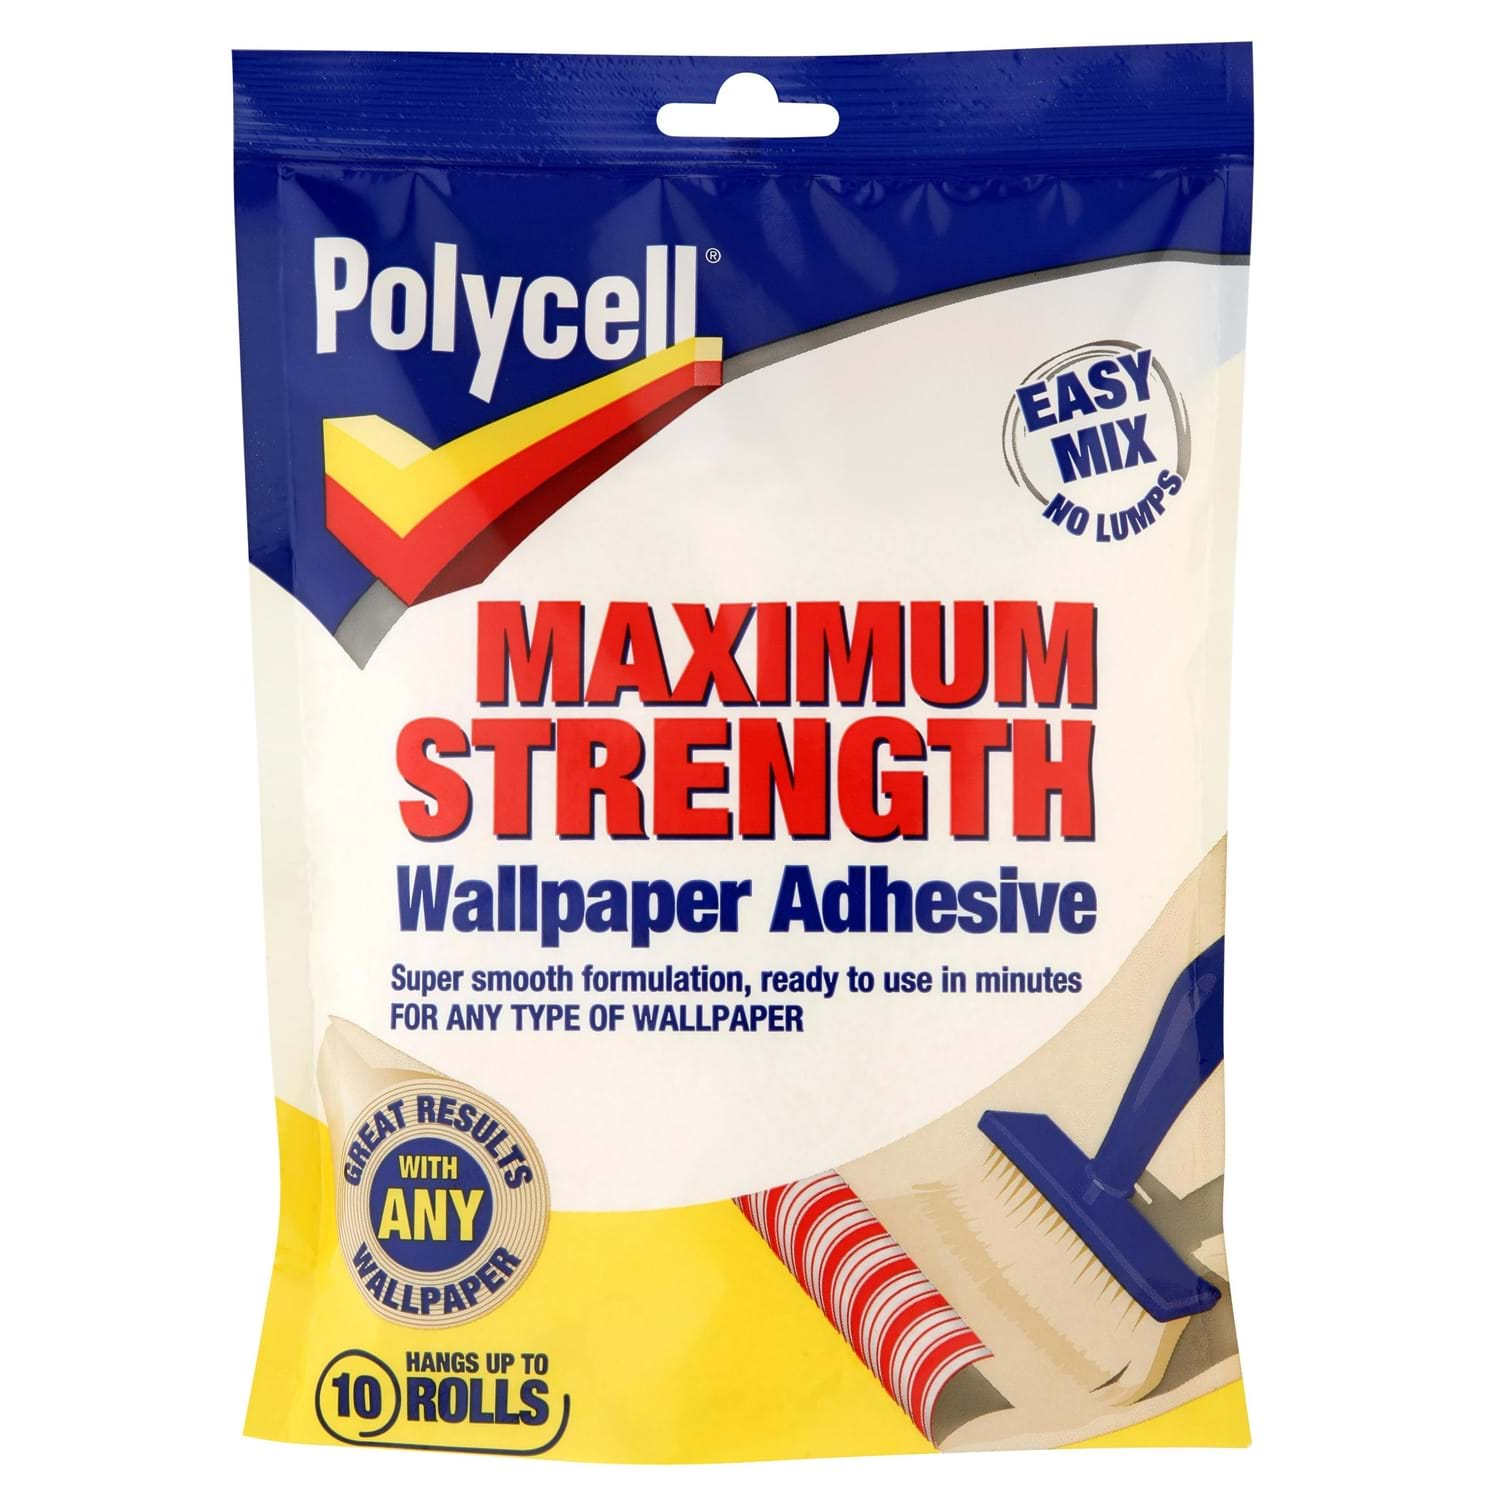 Image of Polycell 10 Roll Max Strength Wallpaper Adhesive